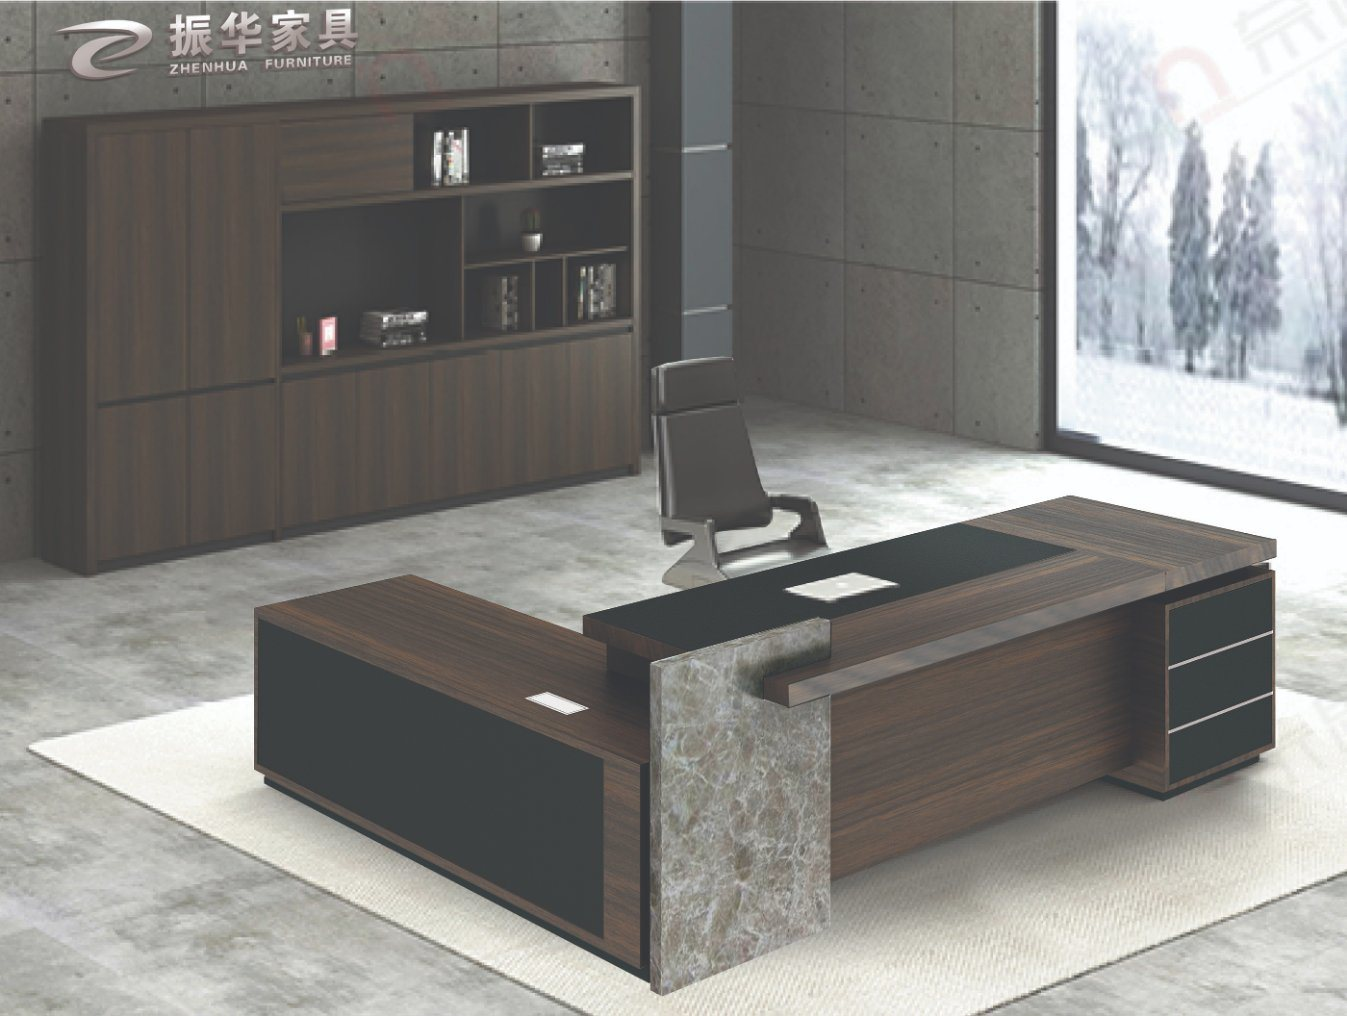 China Wholesales Modern Executive Desk High End Office Furniture Luxury Modern Office Desk China Office Table Office Furniture